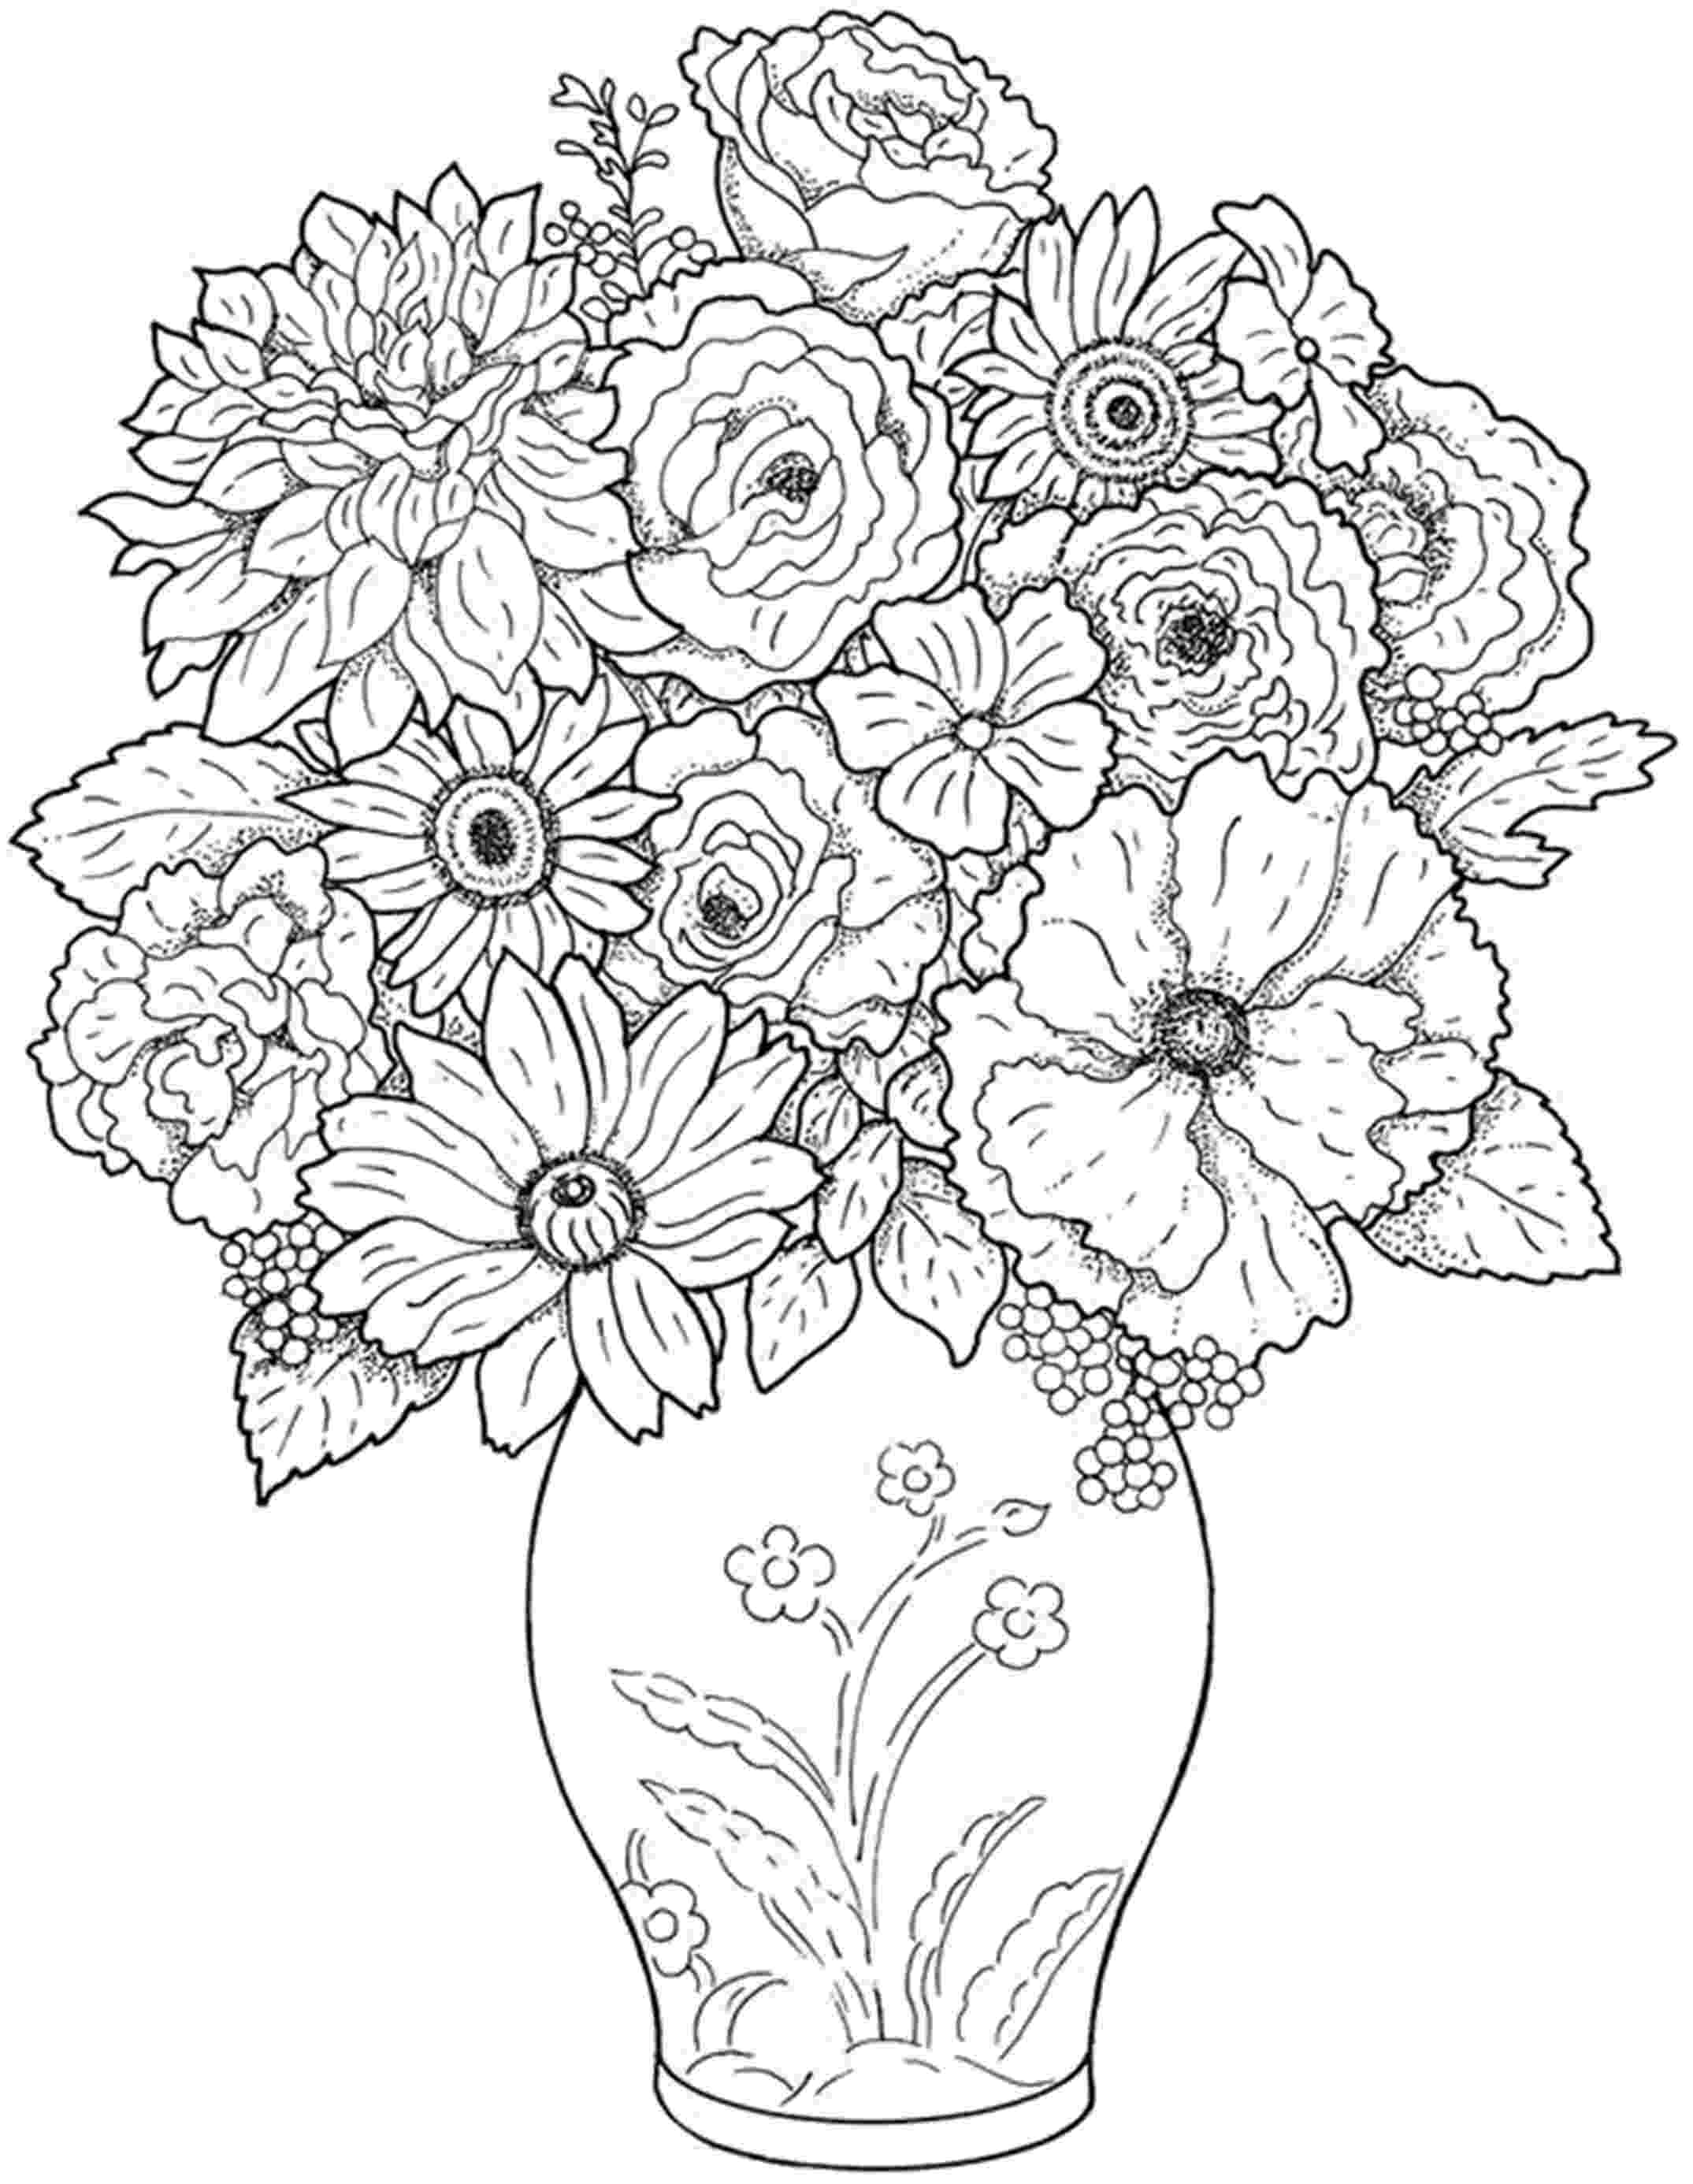 color page flower flower coloring pages flower page color